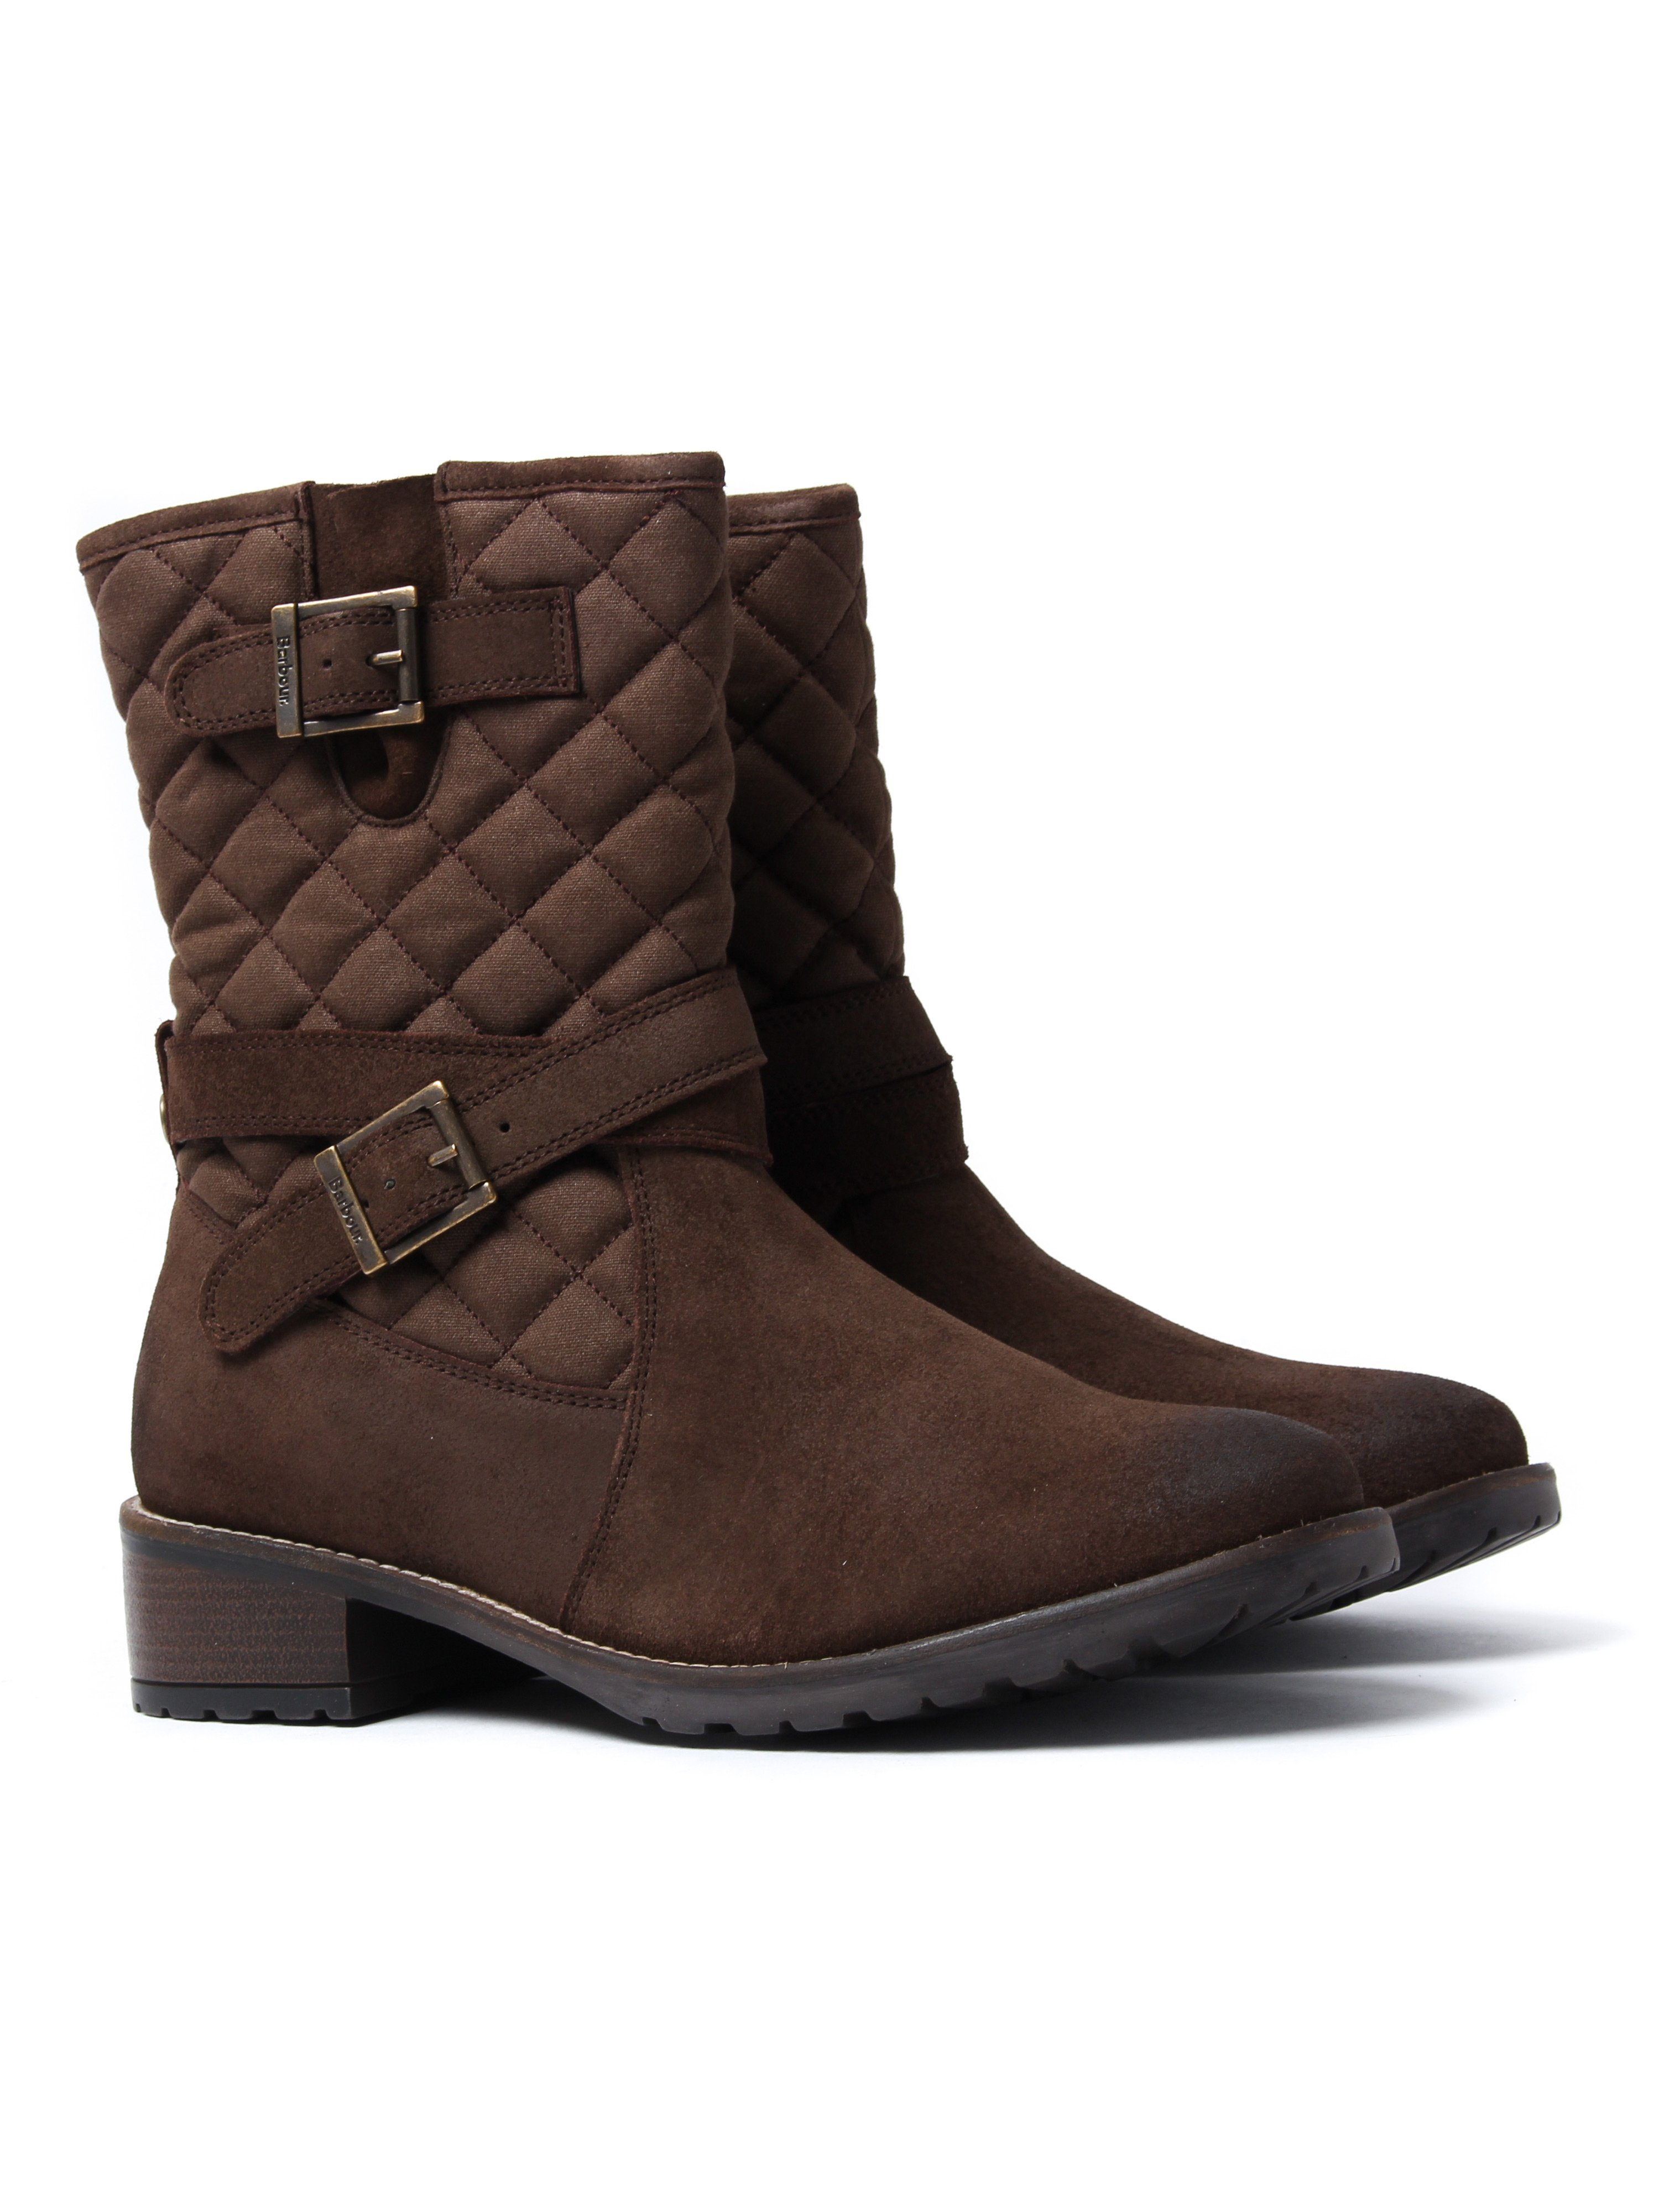 Barbour Women's Barnes Quilted Boots - Brown Suede